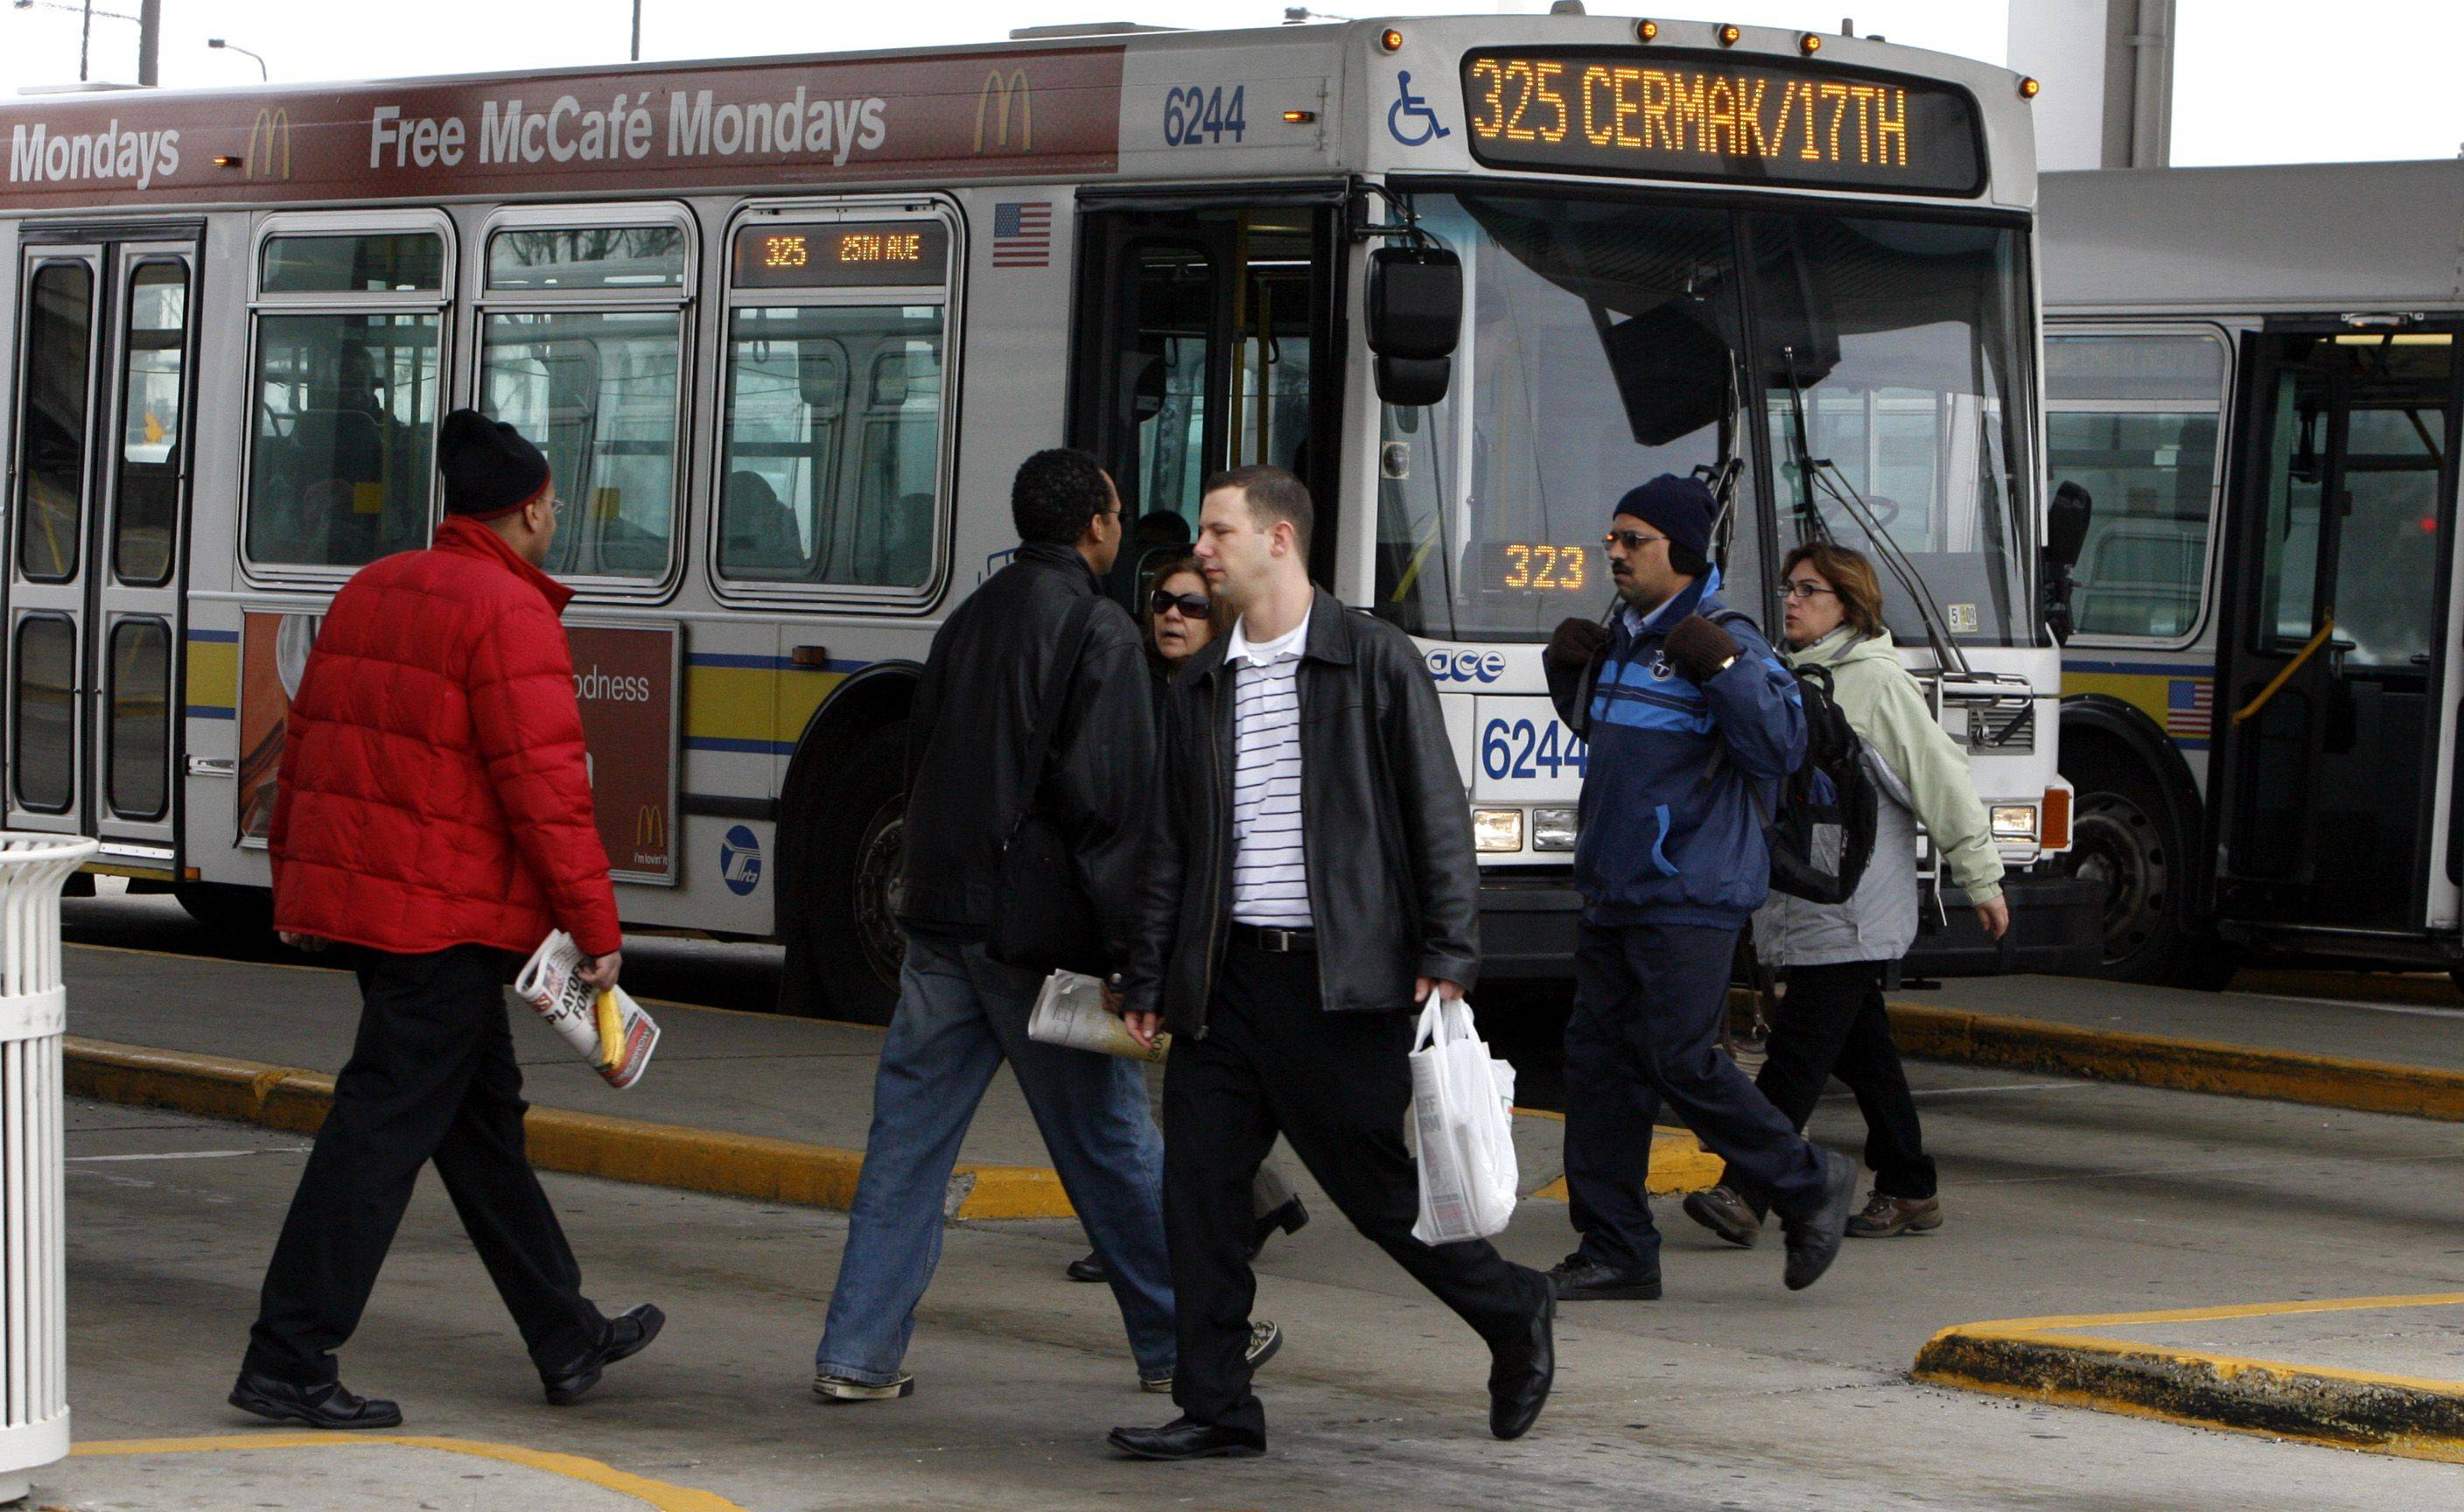 GEORGE LECLAIRE/gleclaire@dailyherald.com Urban Transportation Center Director Steve Schlickman thinks bus rapid transit using Pace is the solution to better commutes in the suburbs.